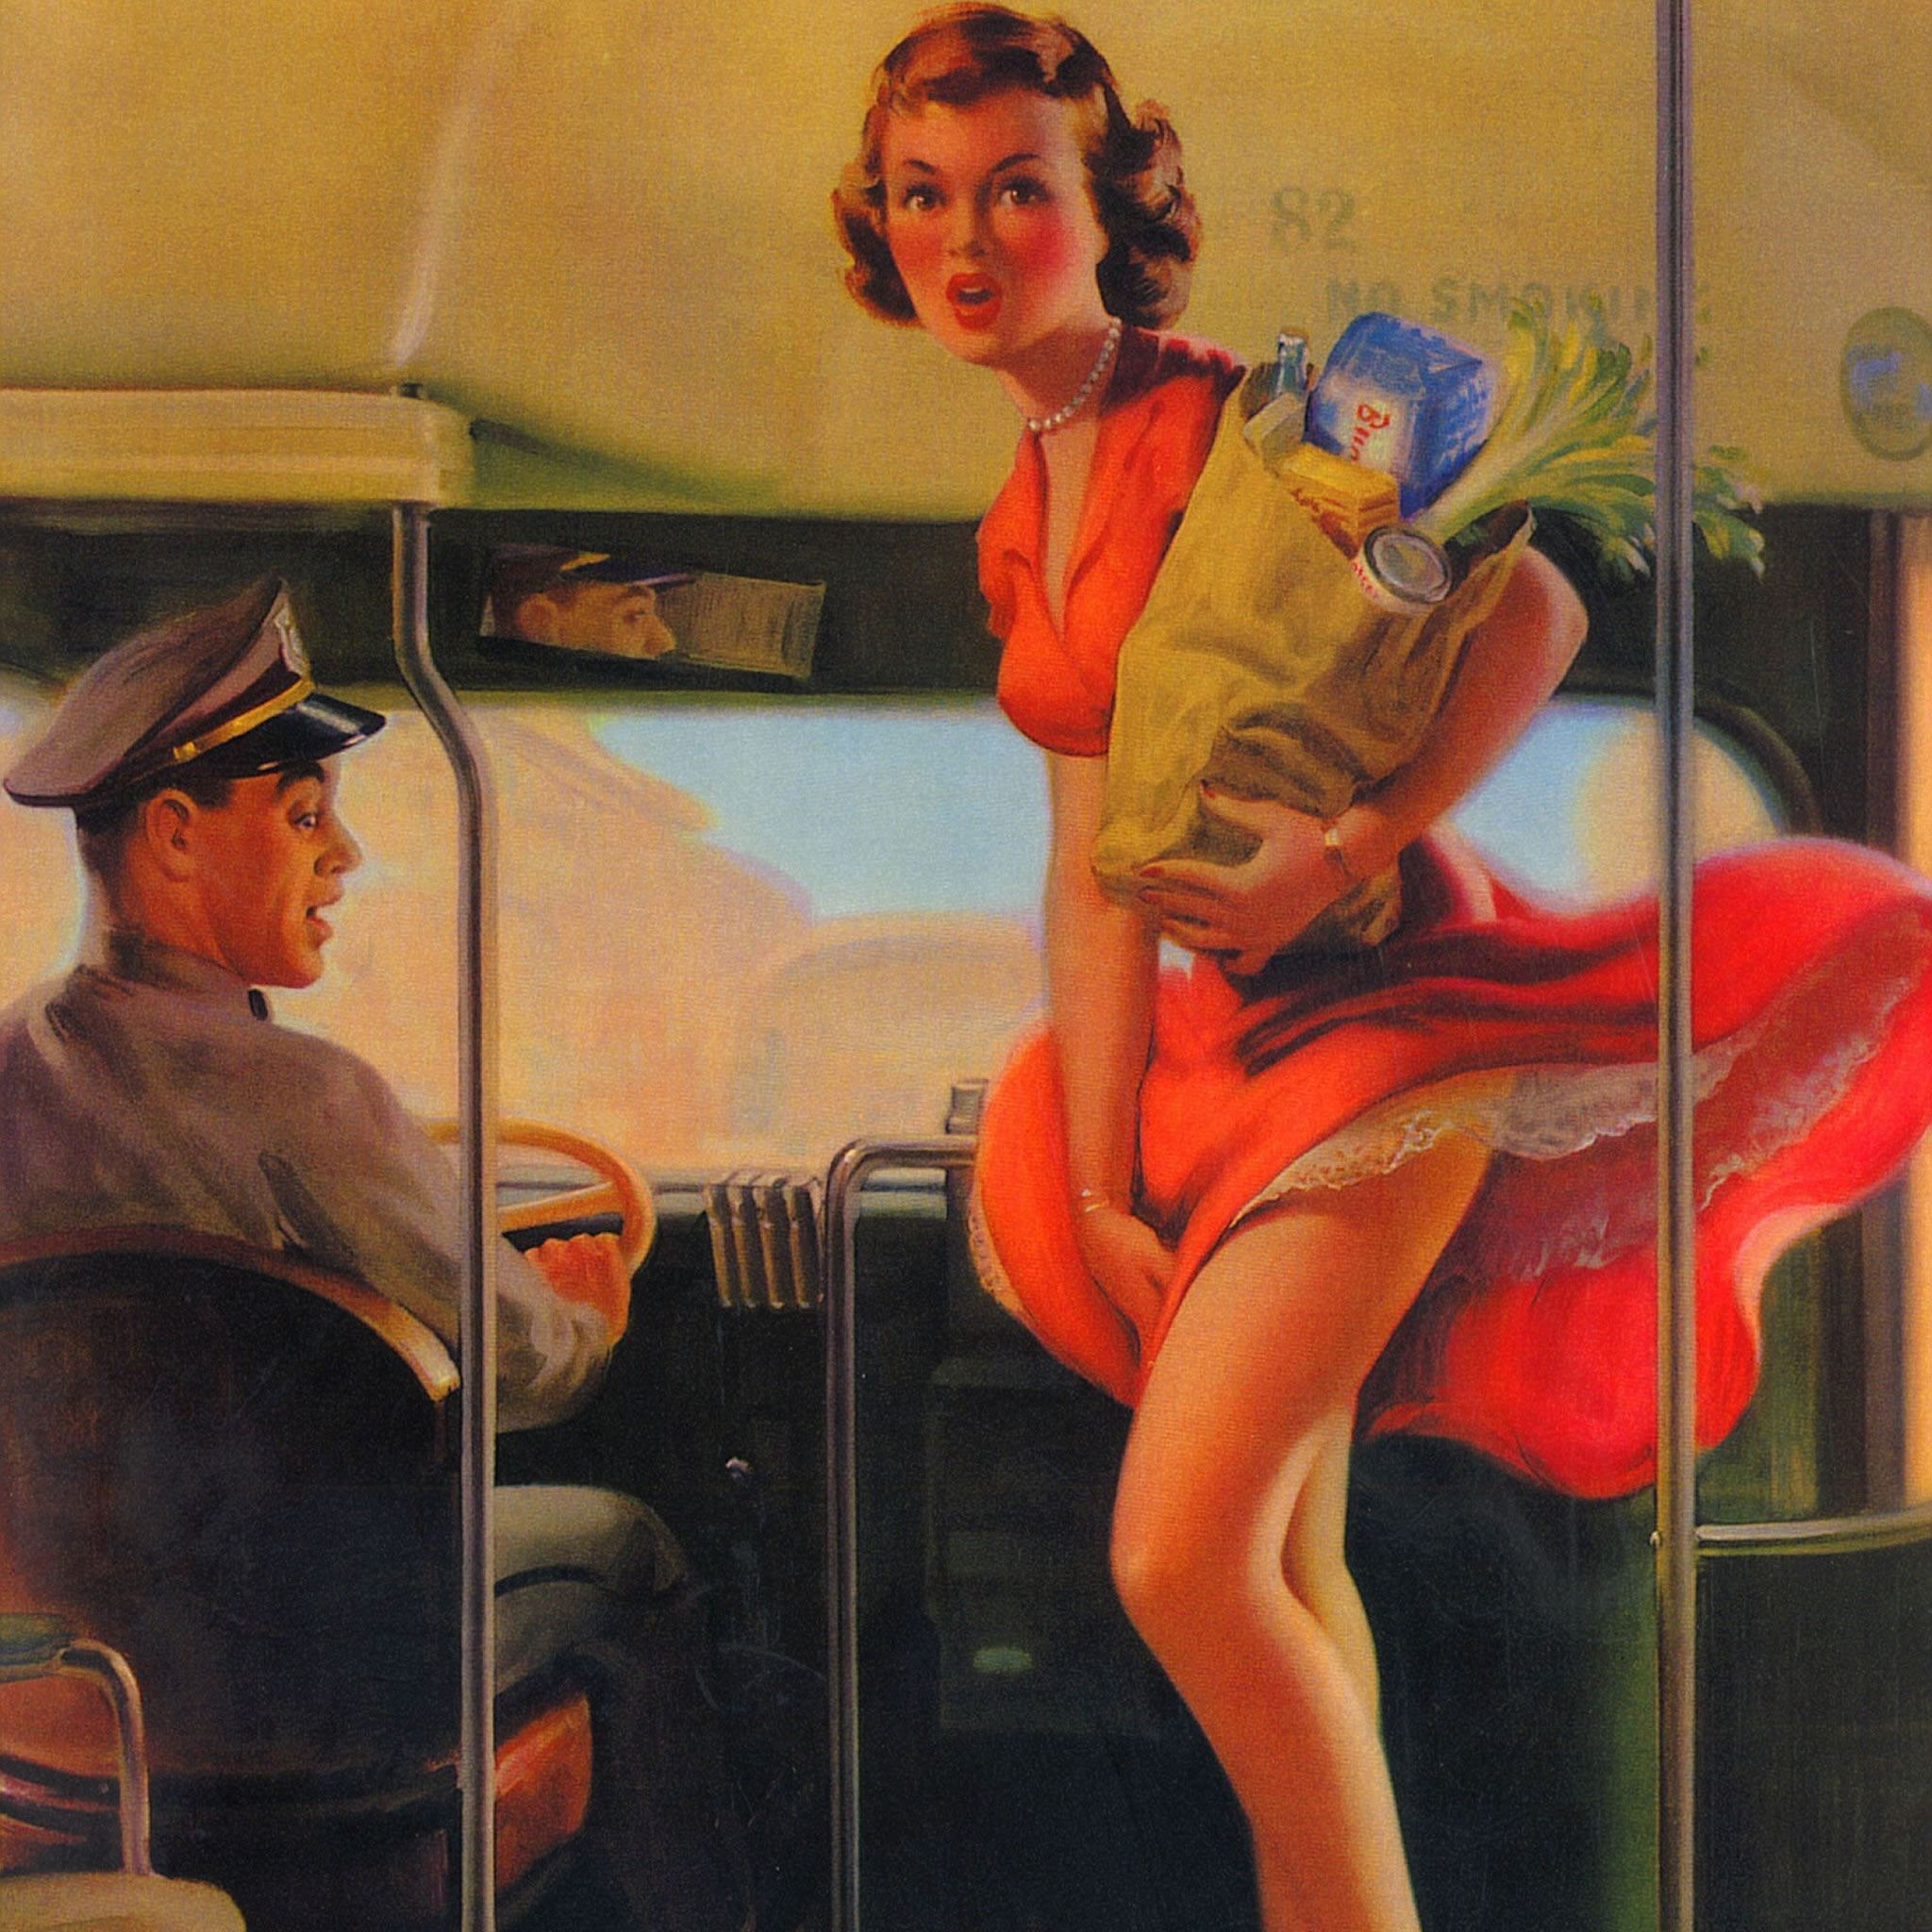 Bus Rider Pin Up Girl Painting Art iPad Air wallpaper